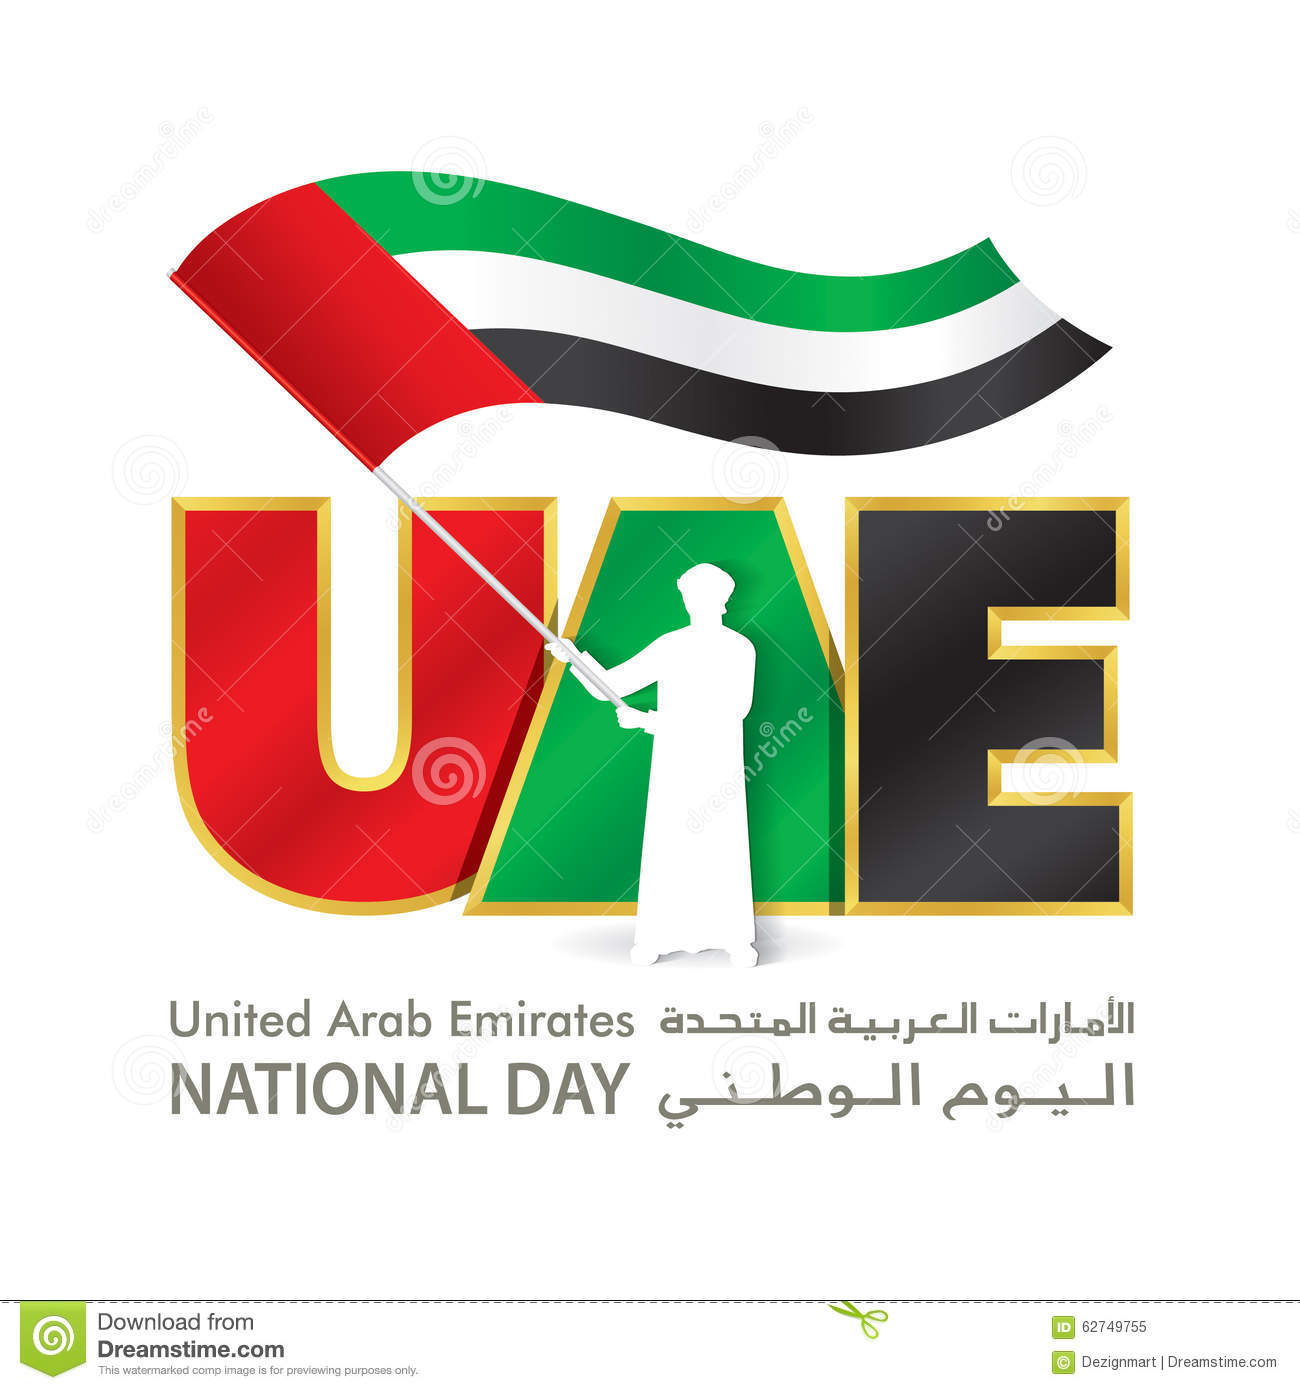 uae national day logo with young emirati hold uae flag an